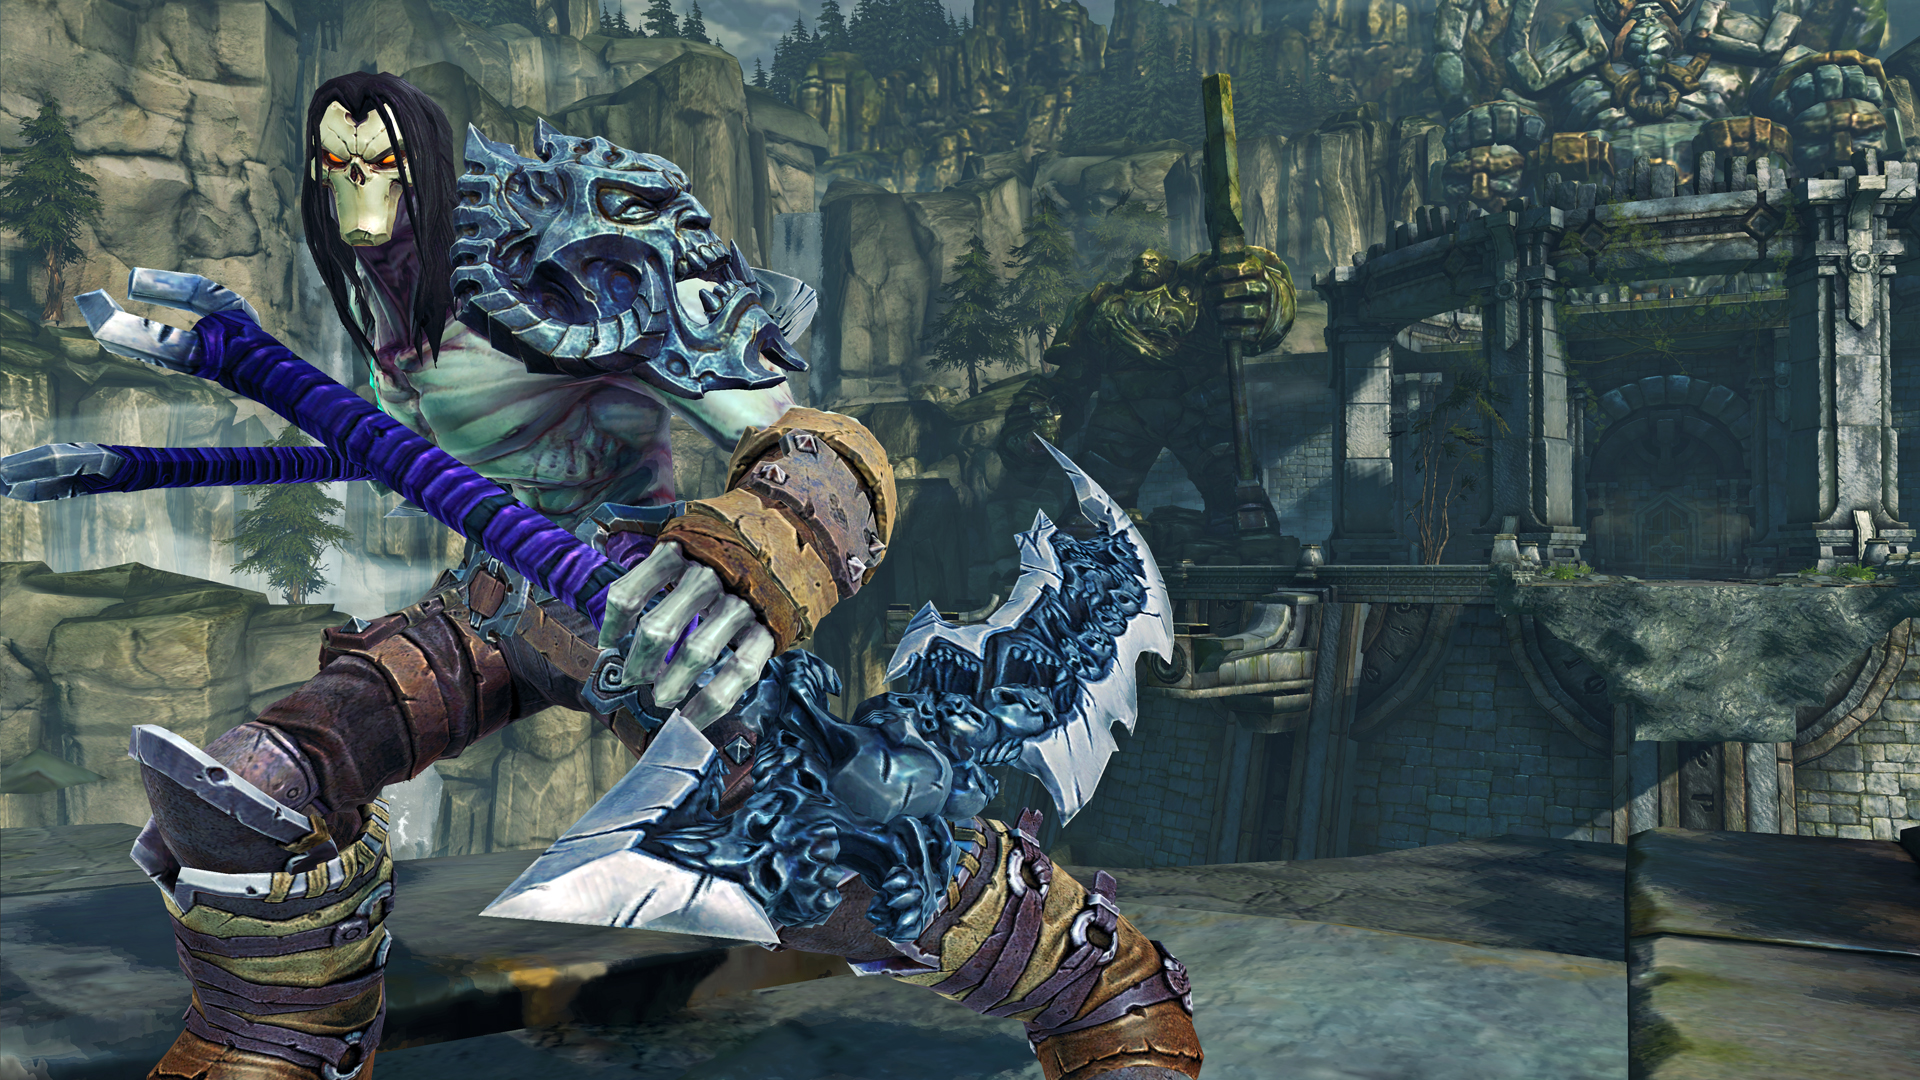 gw2 world map with Darksiders 2 Arguls Tomb Review on Introducing The Megaserver System in addition Detroit Metro Airport Map together with Uebersicht in addition Watch further 超清壁纸2560x2500.